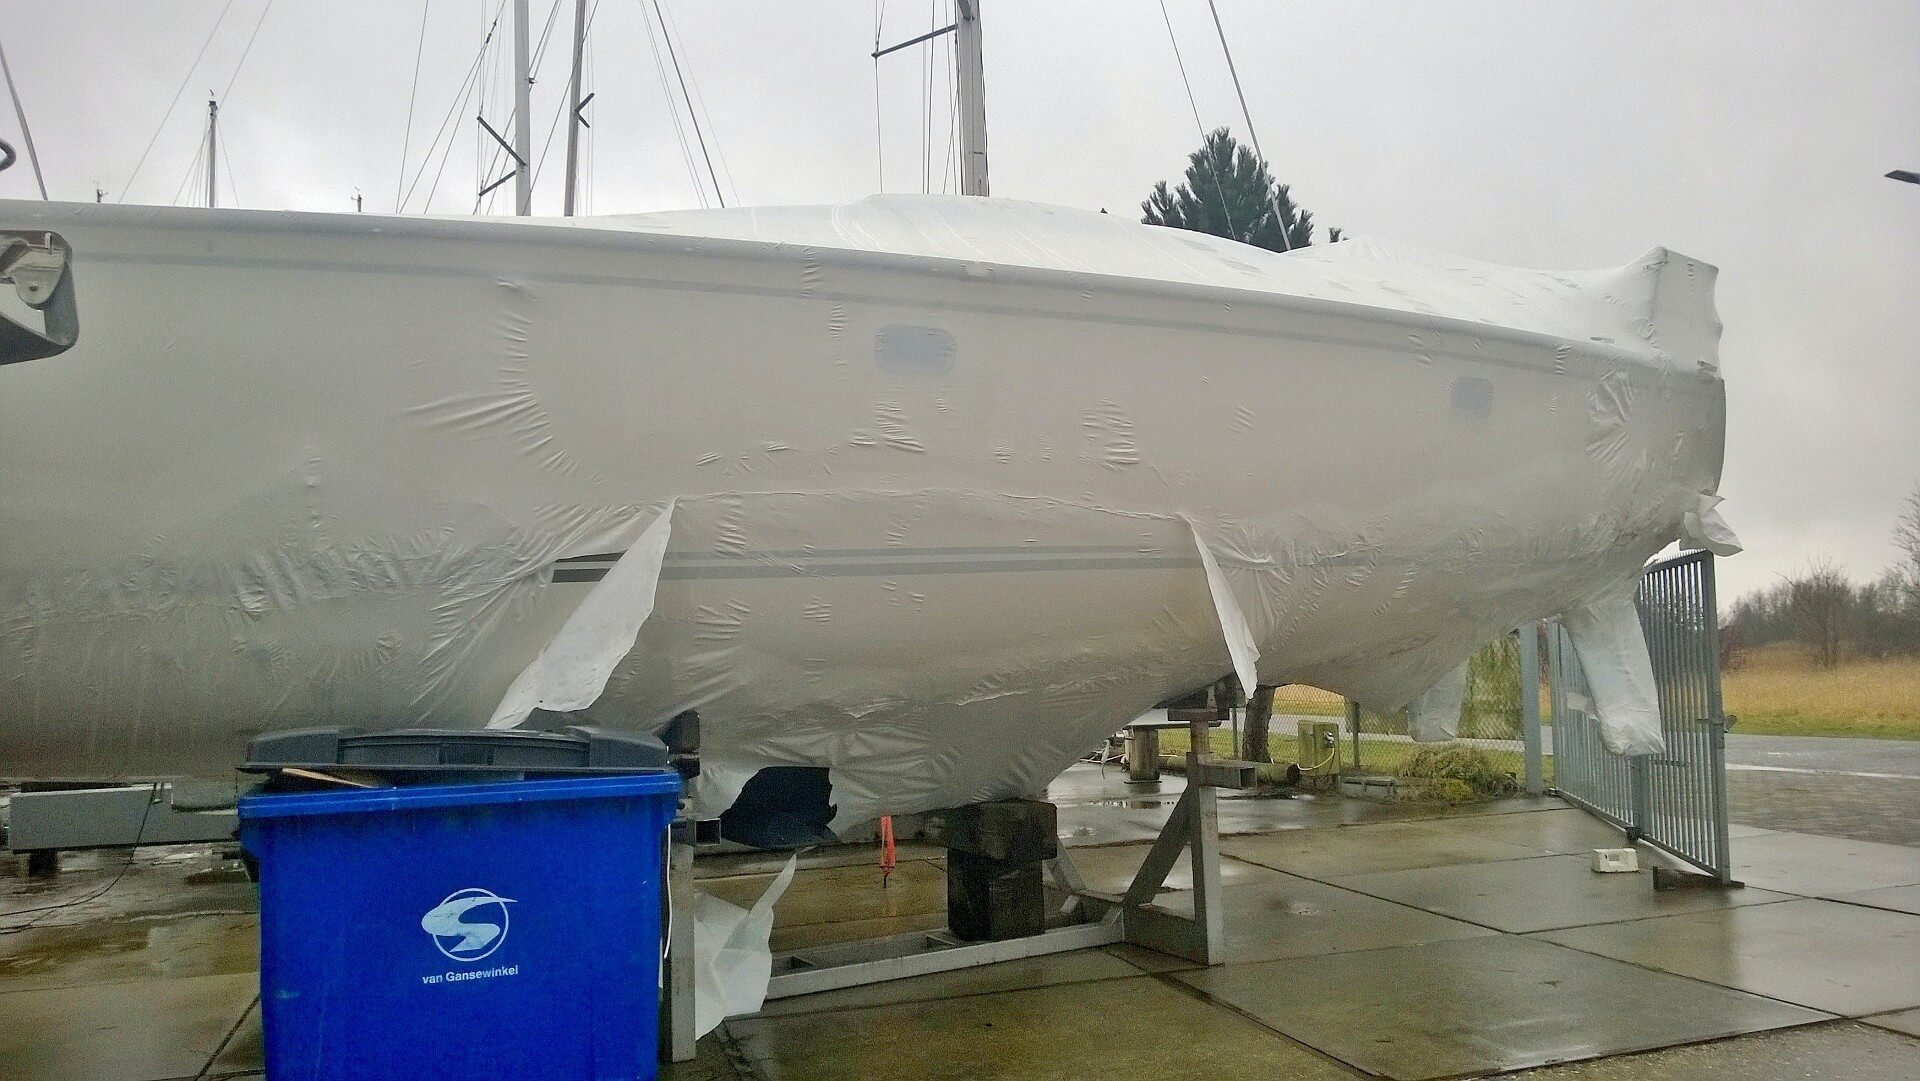 Unwrapping the Package – Getting Ready for Sailing Season